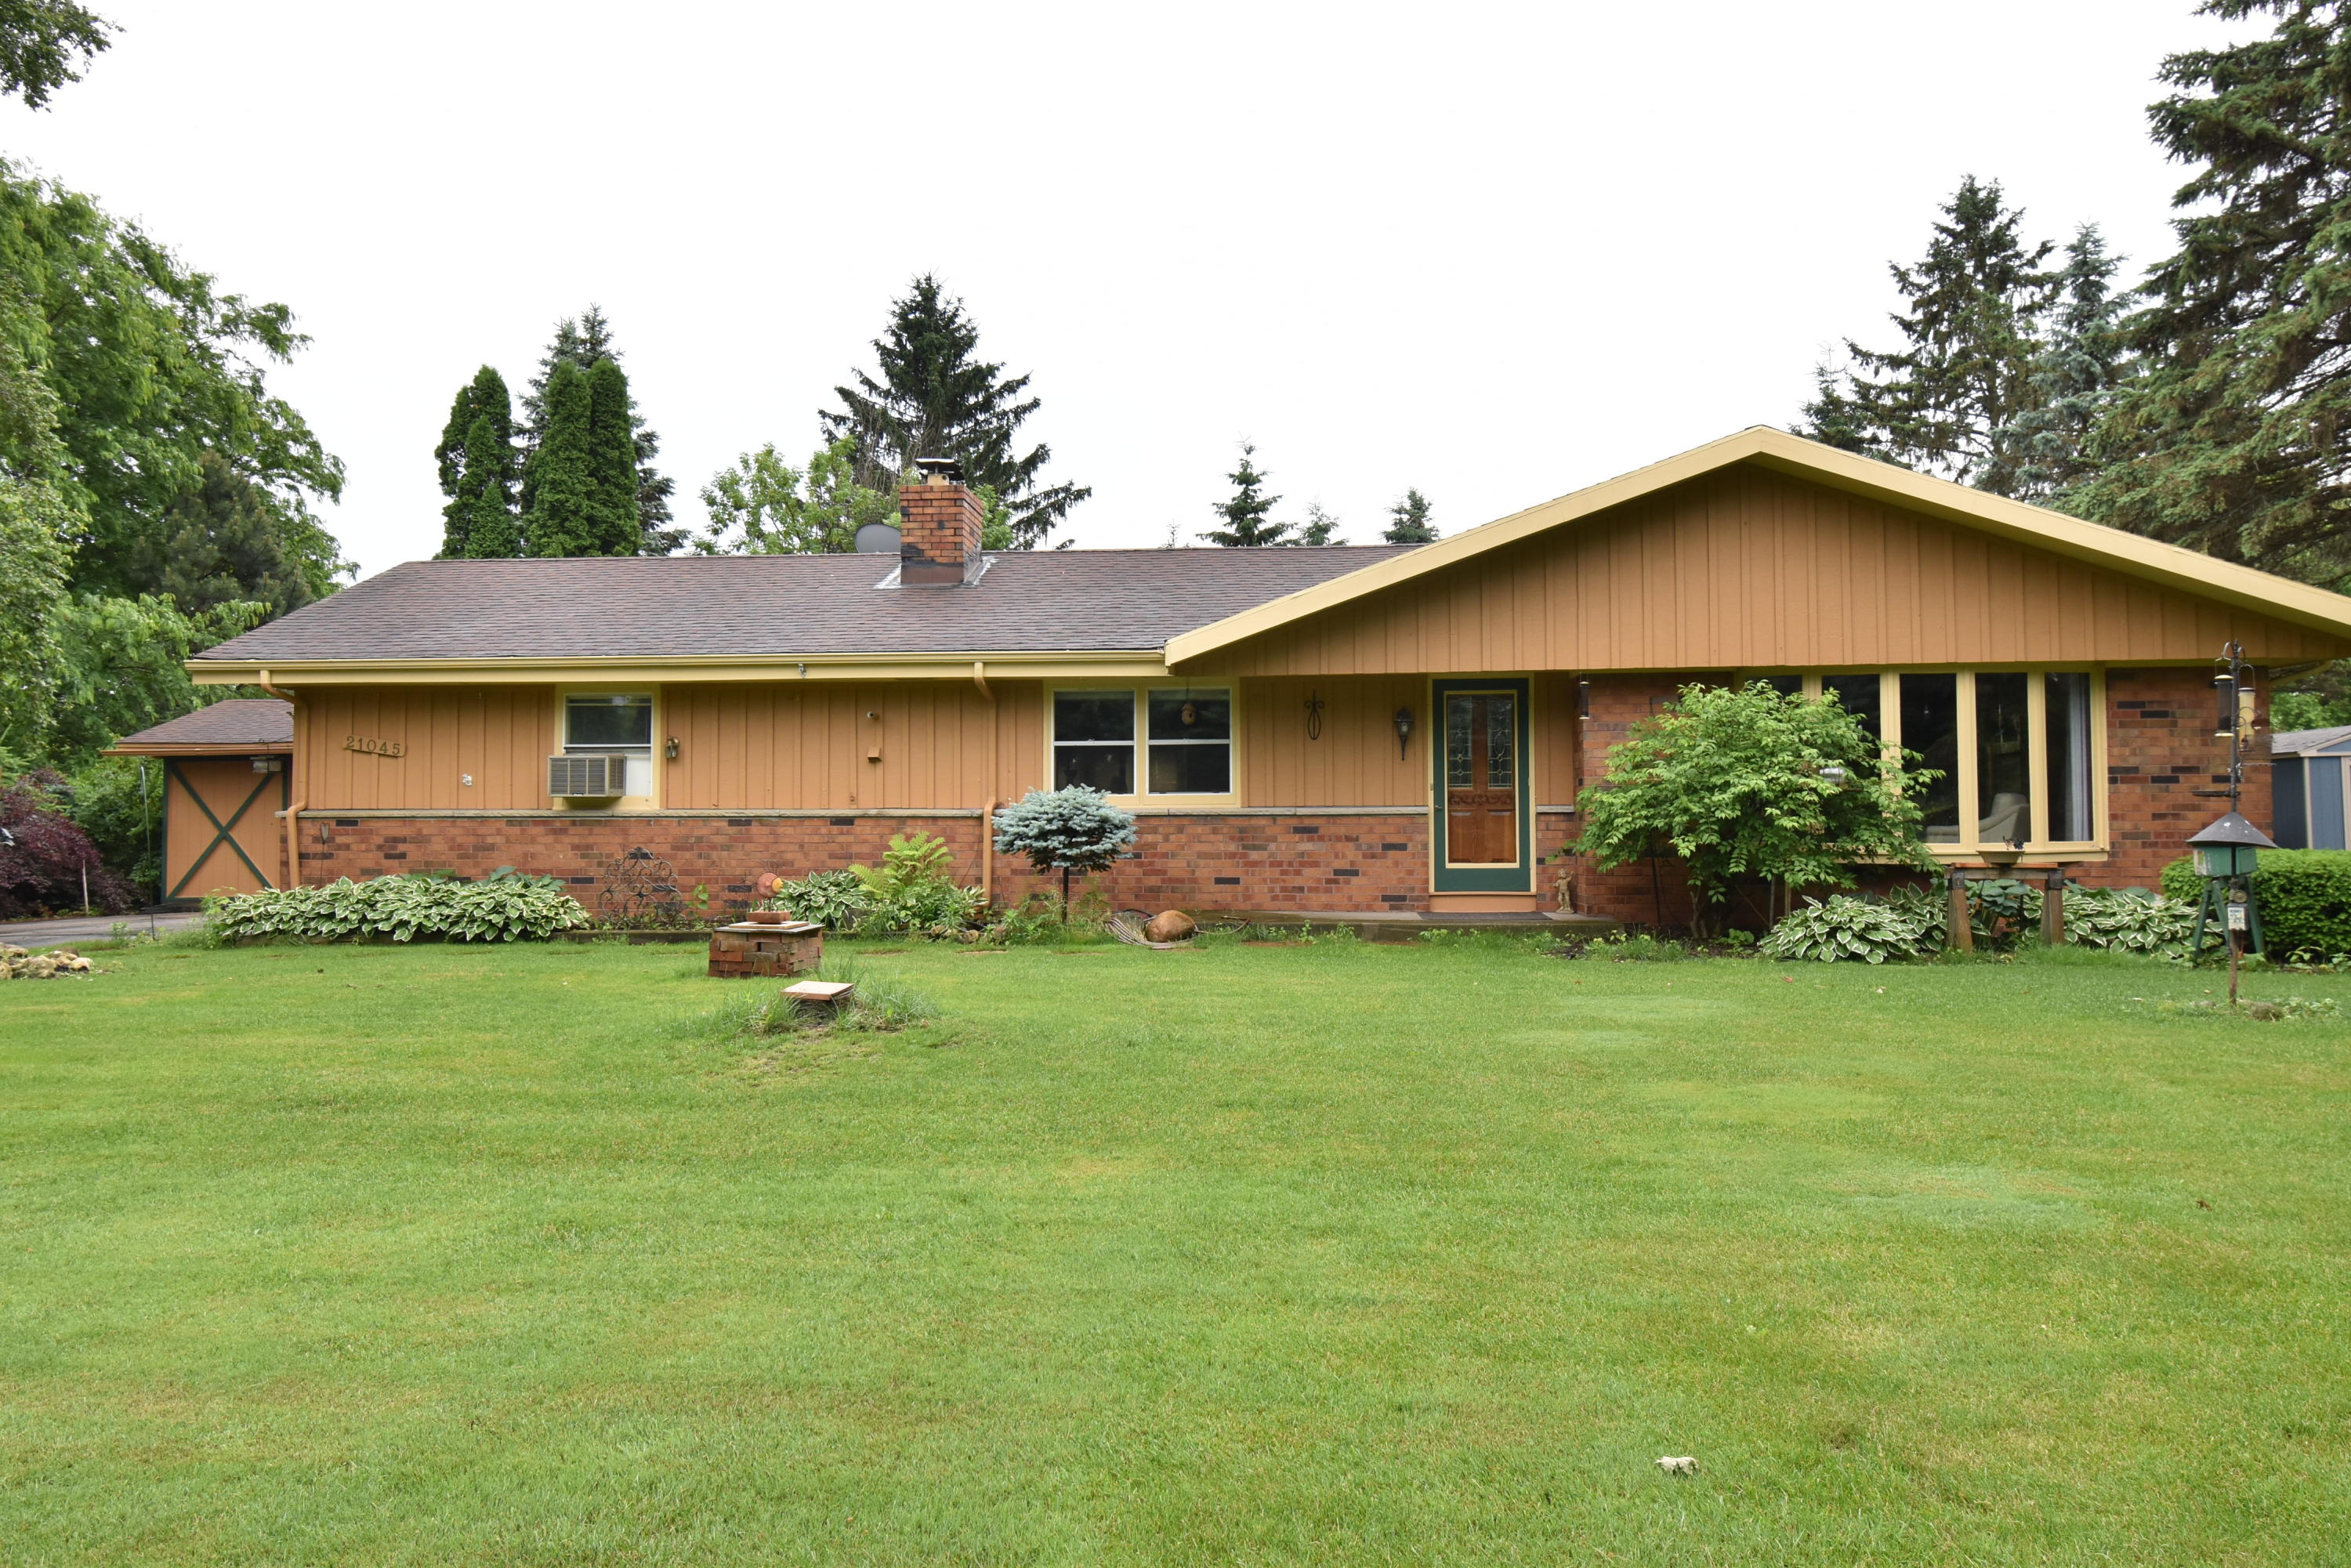 ... N112W21045 Mequon Rd Germantown, WI 53022 Property Image ...